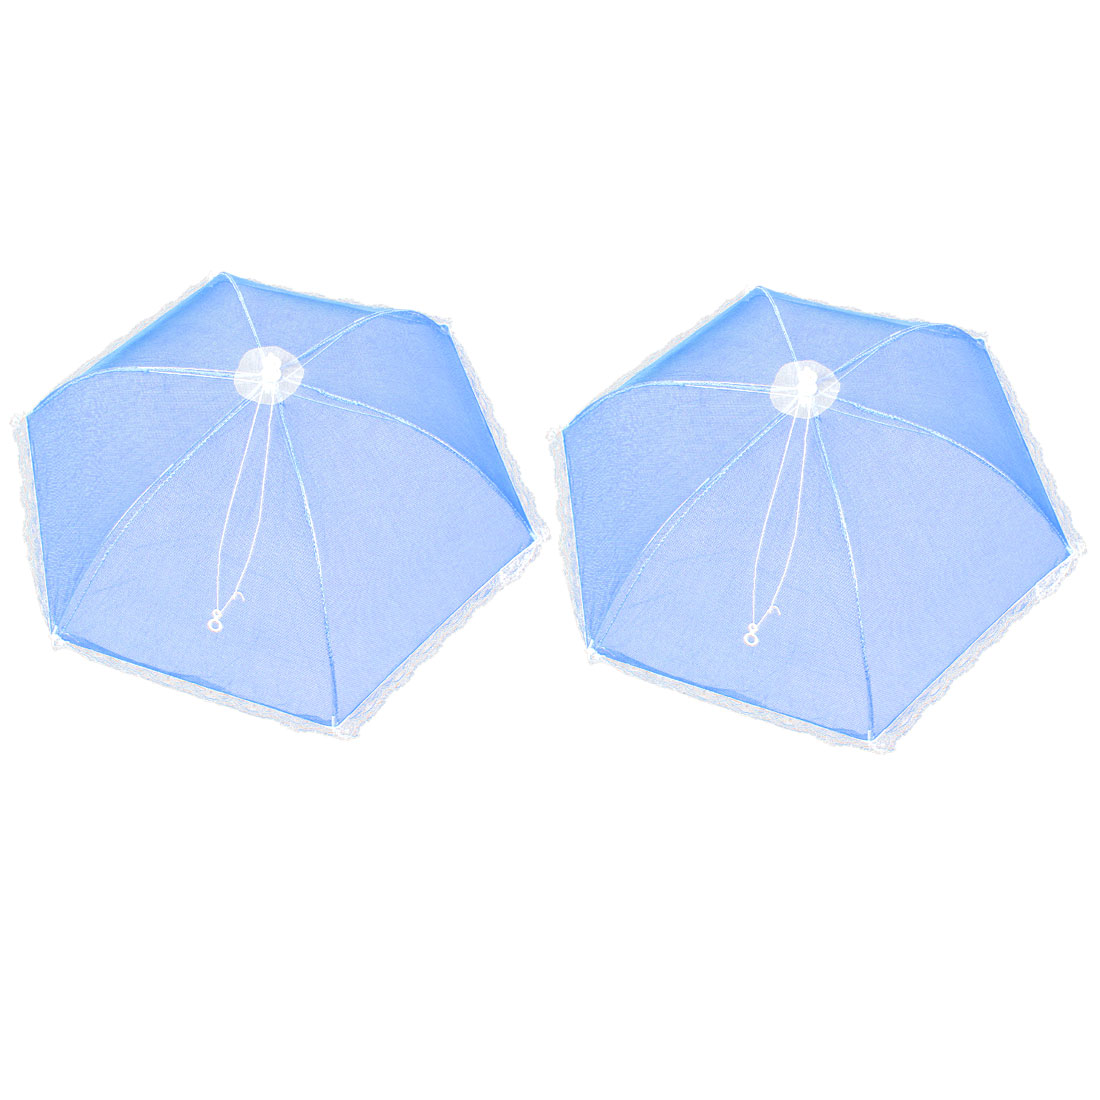 2 Pcs Kitchen Picnic Metal Frame Nylon Umbrella Shaped Foldable Food Cover Blue